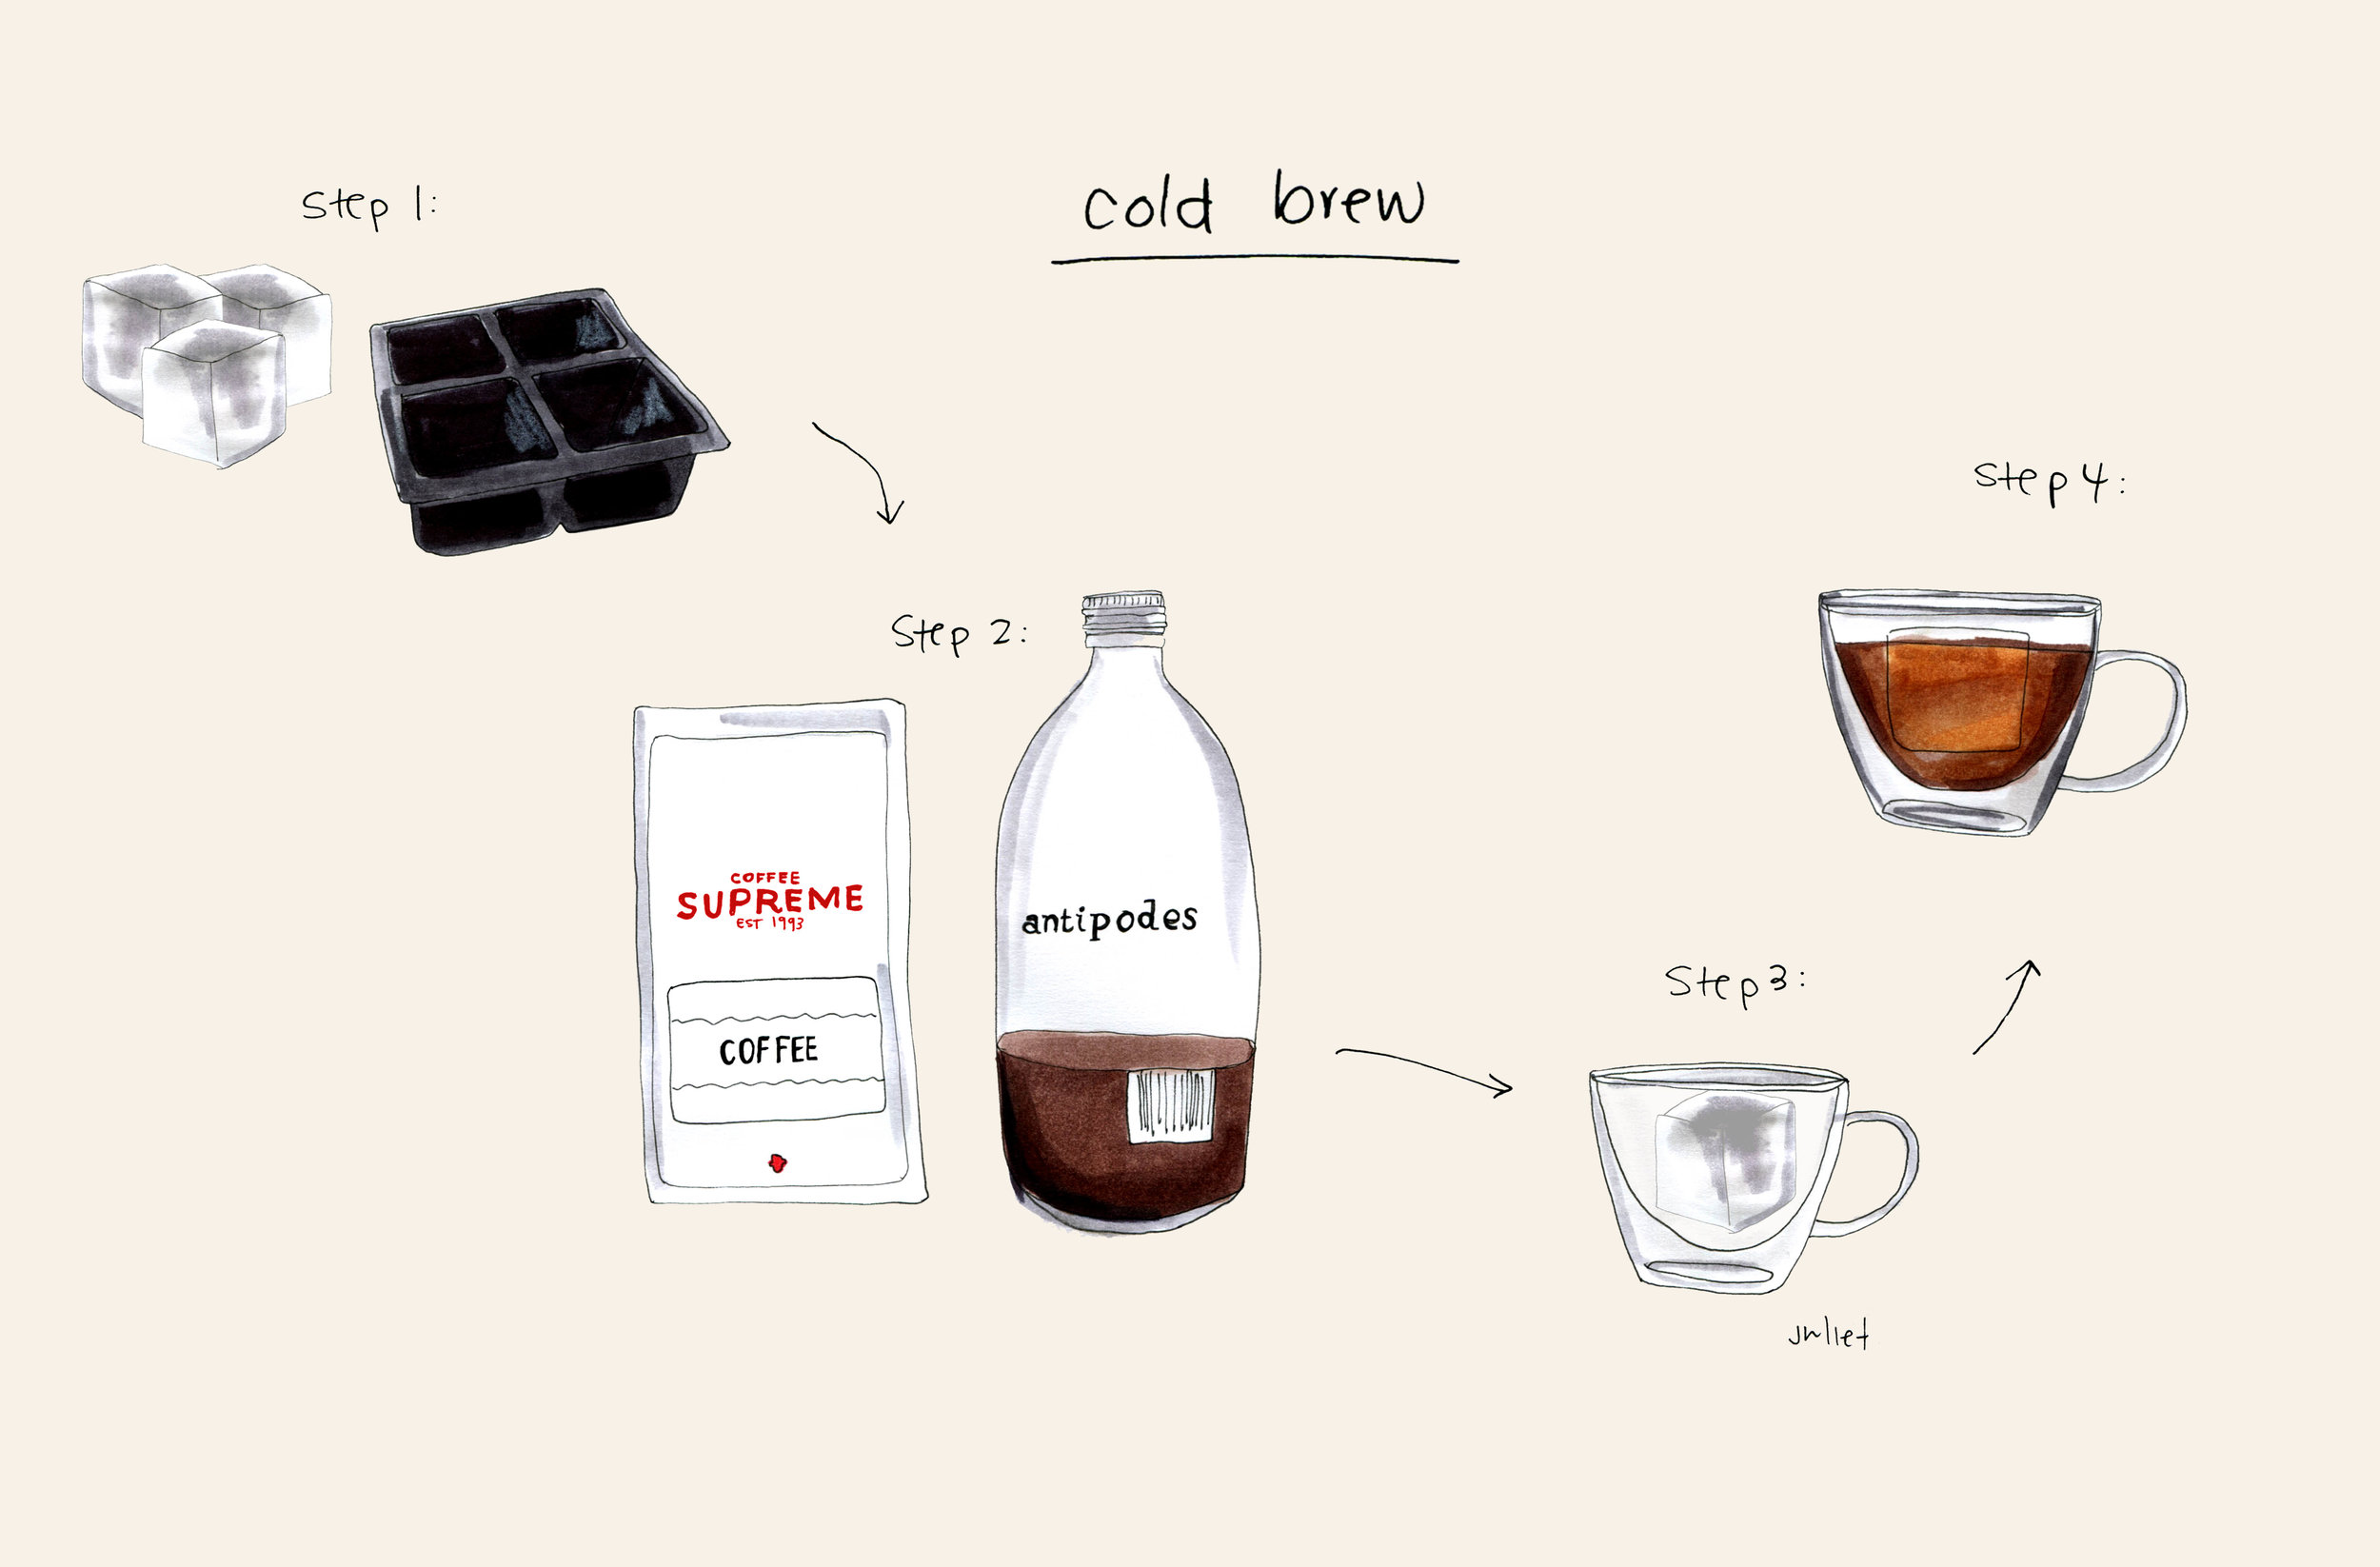 how to make cold brew_ the juliet report